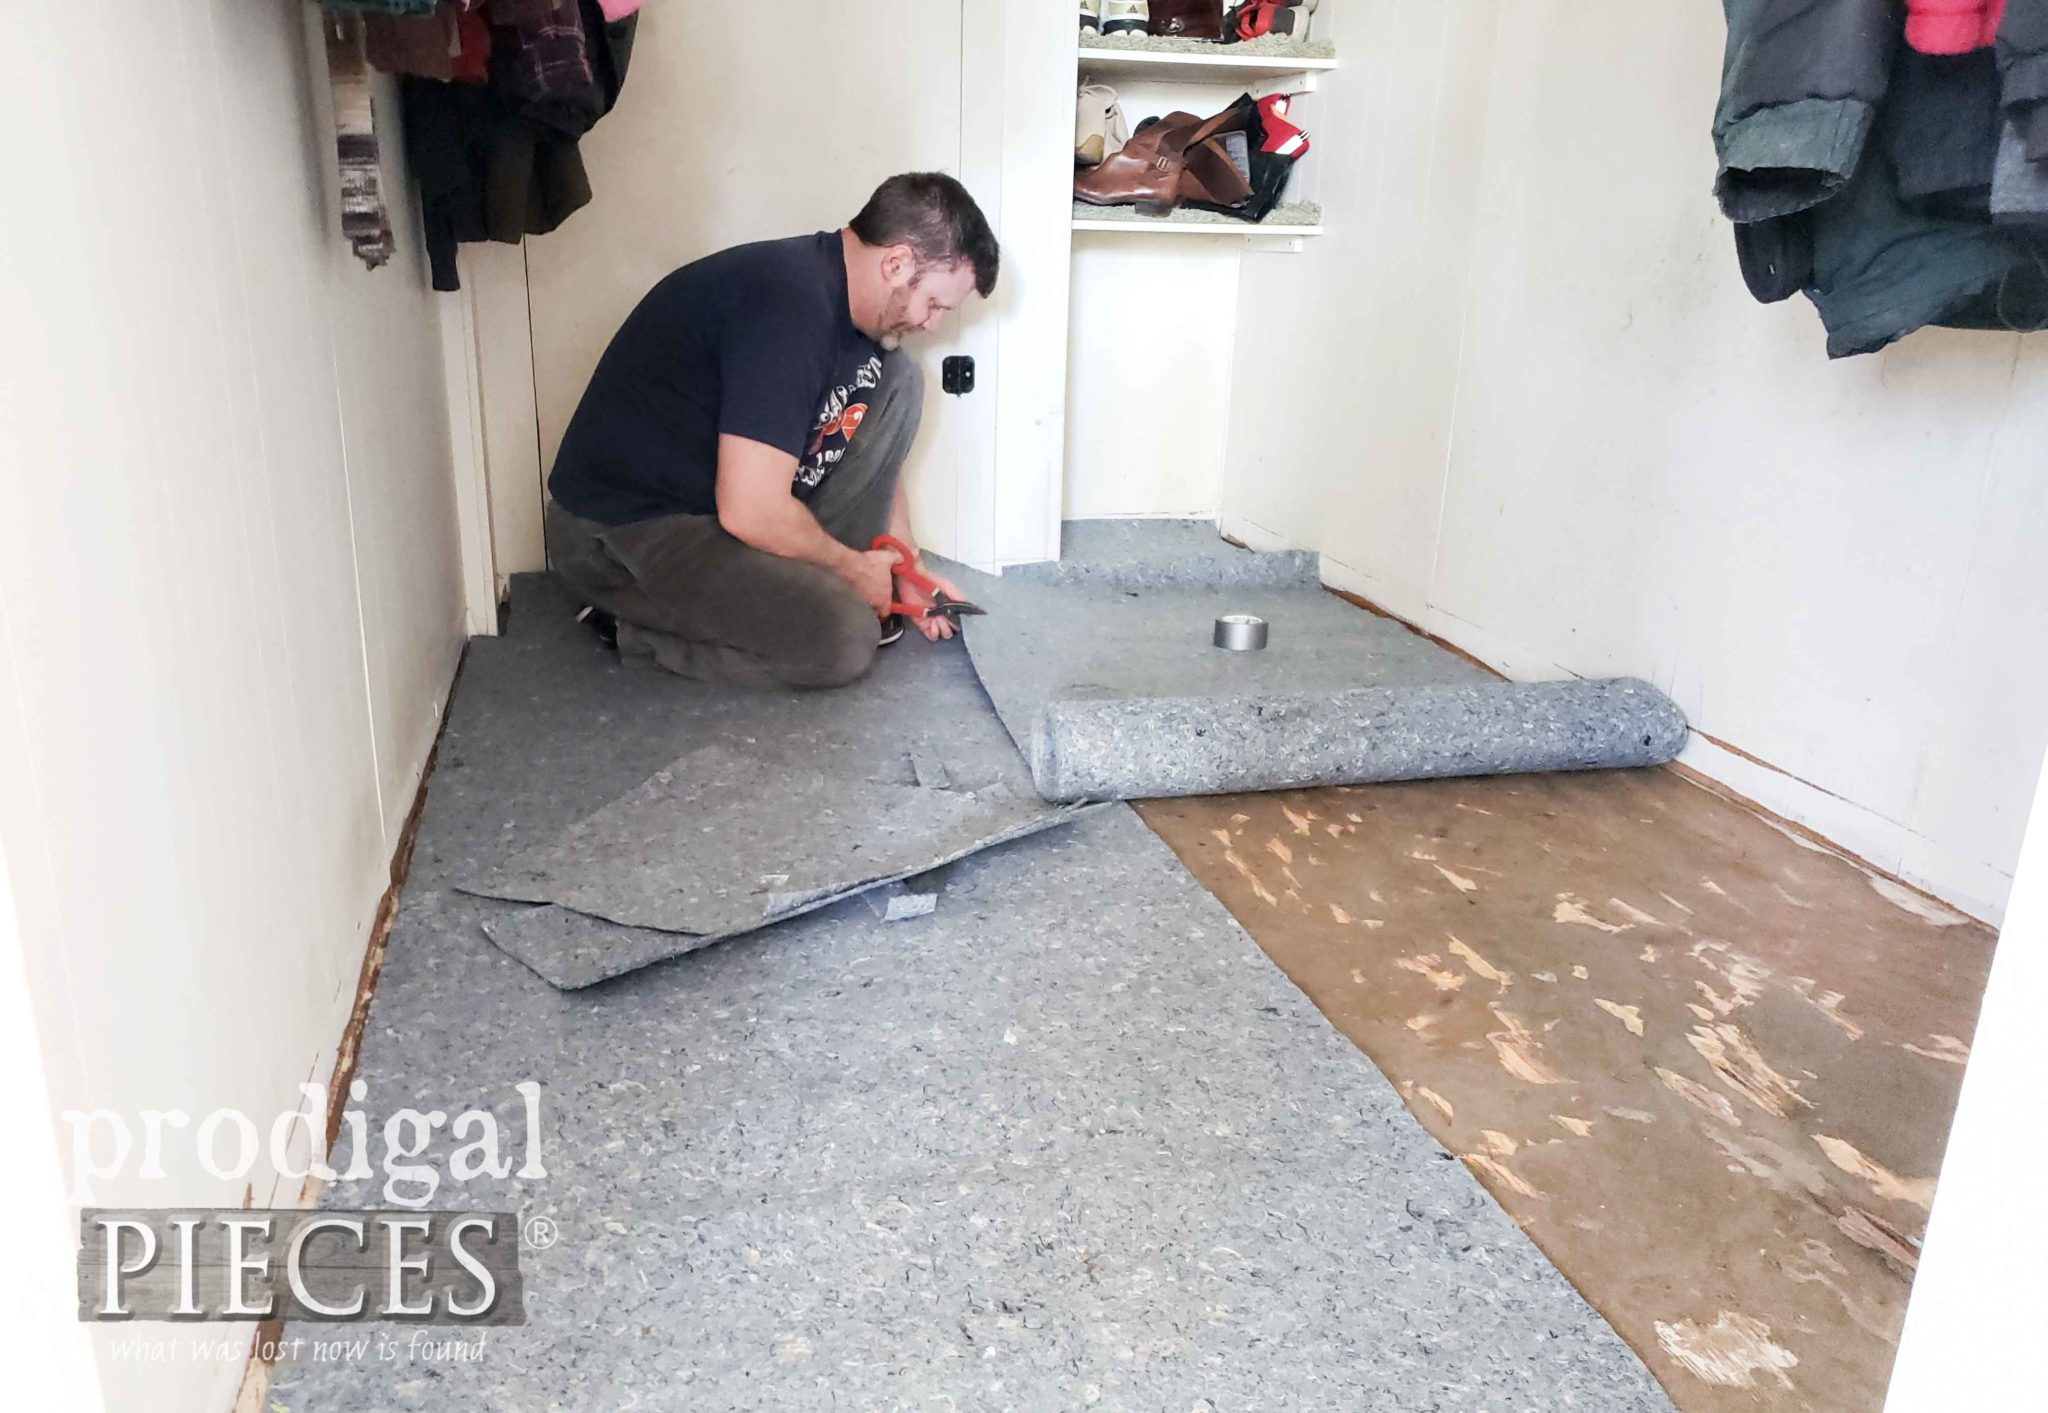 Placing Underlayment on Mudroom Floor | prodigalpieces.com